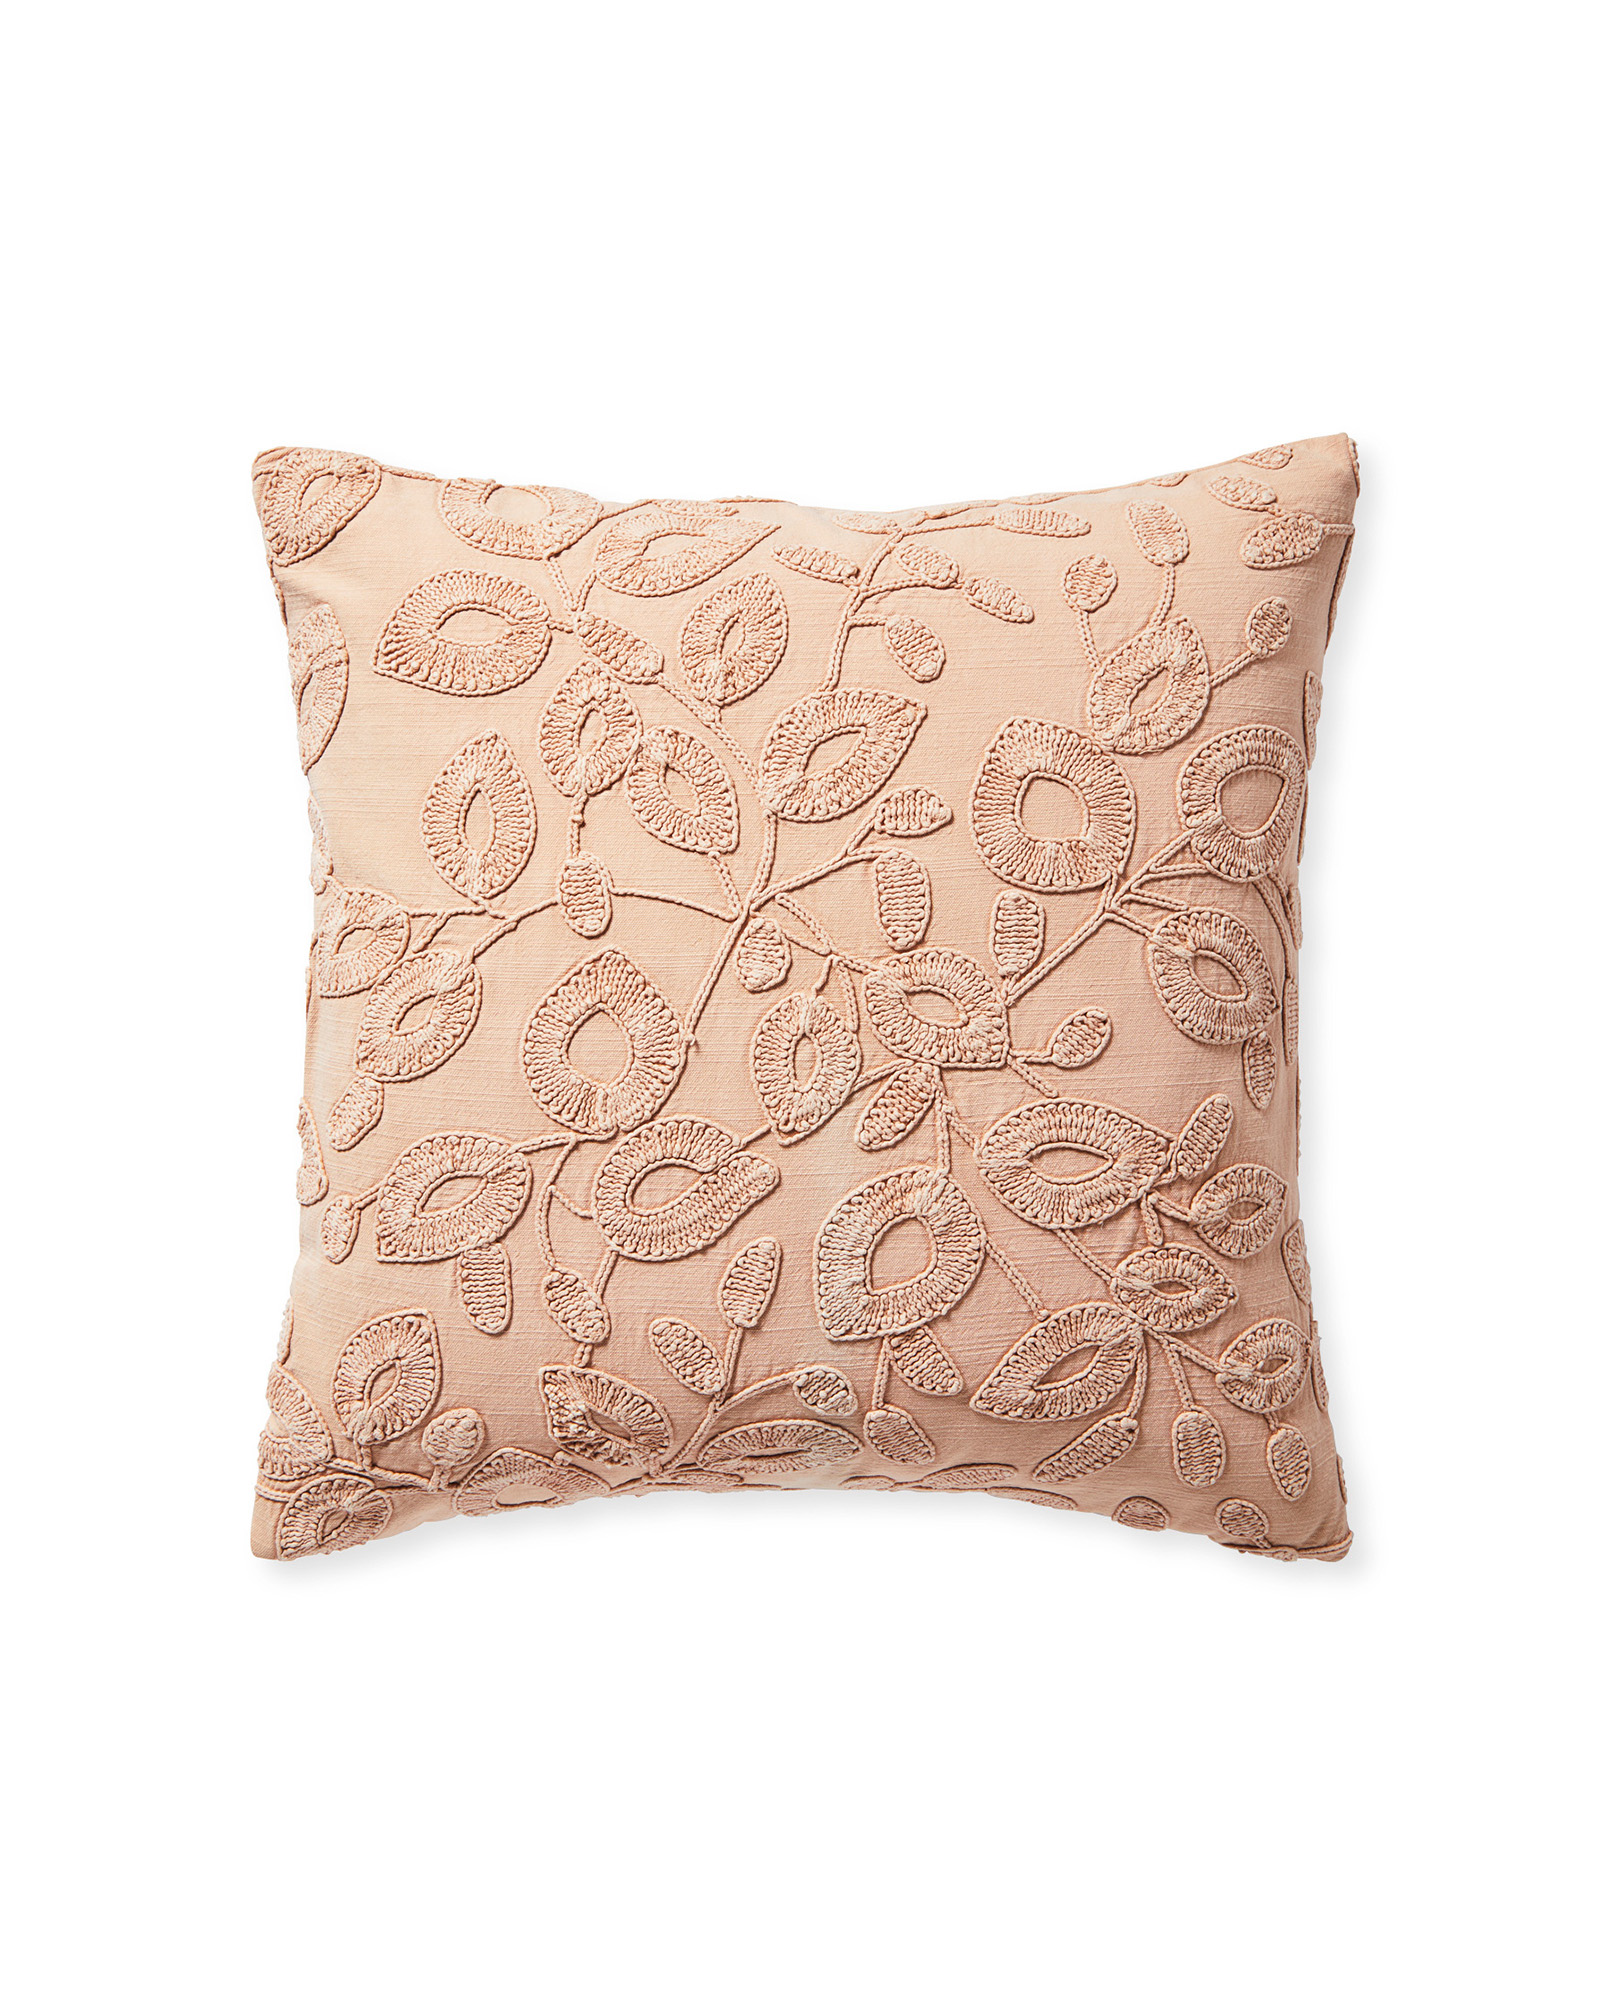 Willowbrook Pillow Cover - Wild Rose,